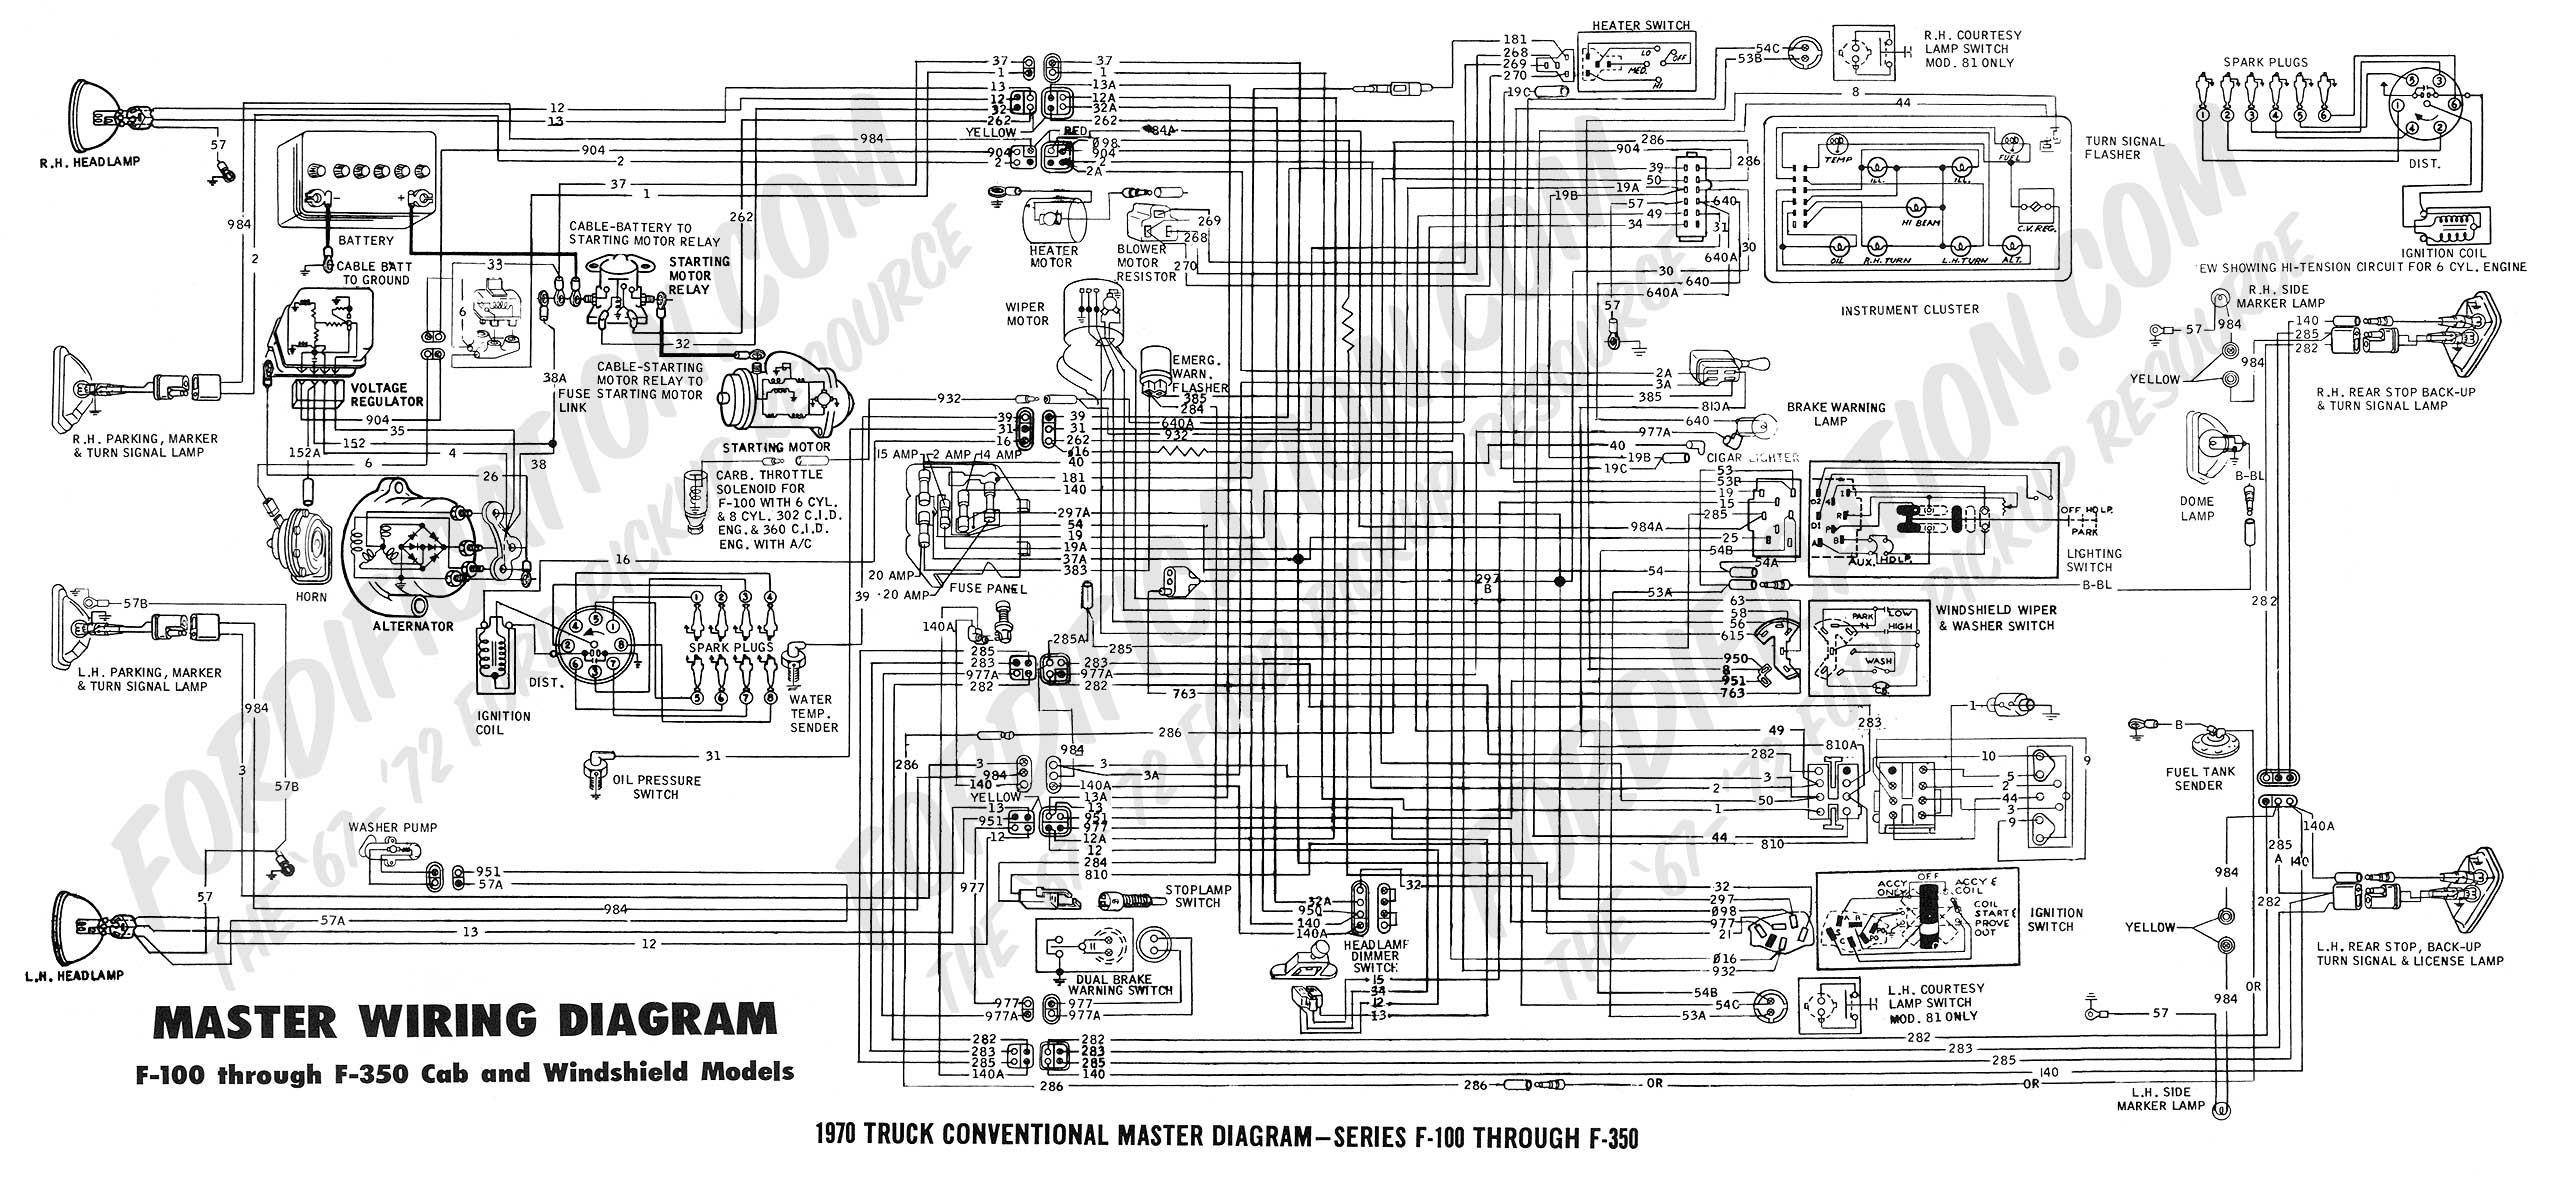 Wiring Diagram For 1985 Ford 350 Schema Diagrams 94 Chevy Diesel F Data Engine